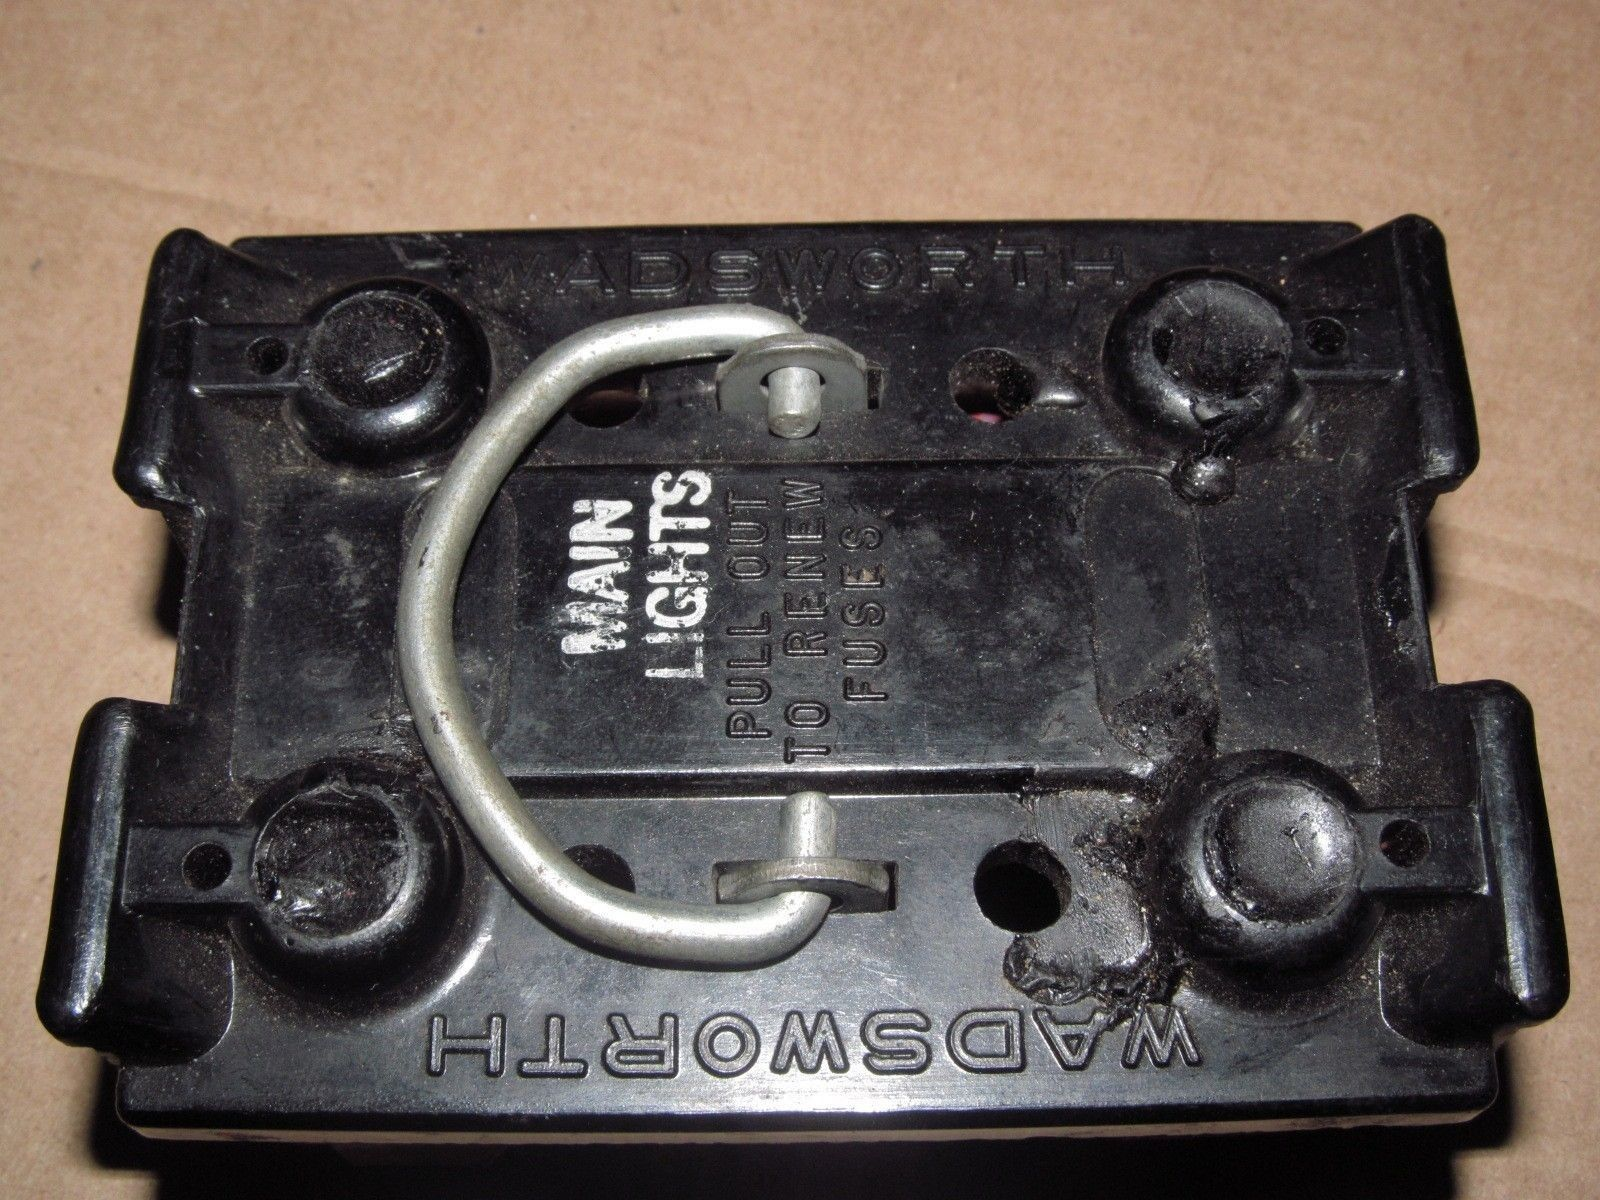 60 amp wadsworth fuse holder pull out free 60a 30a